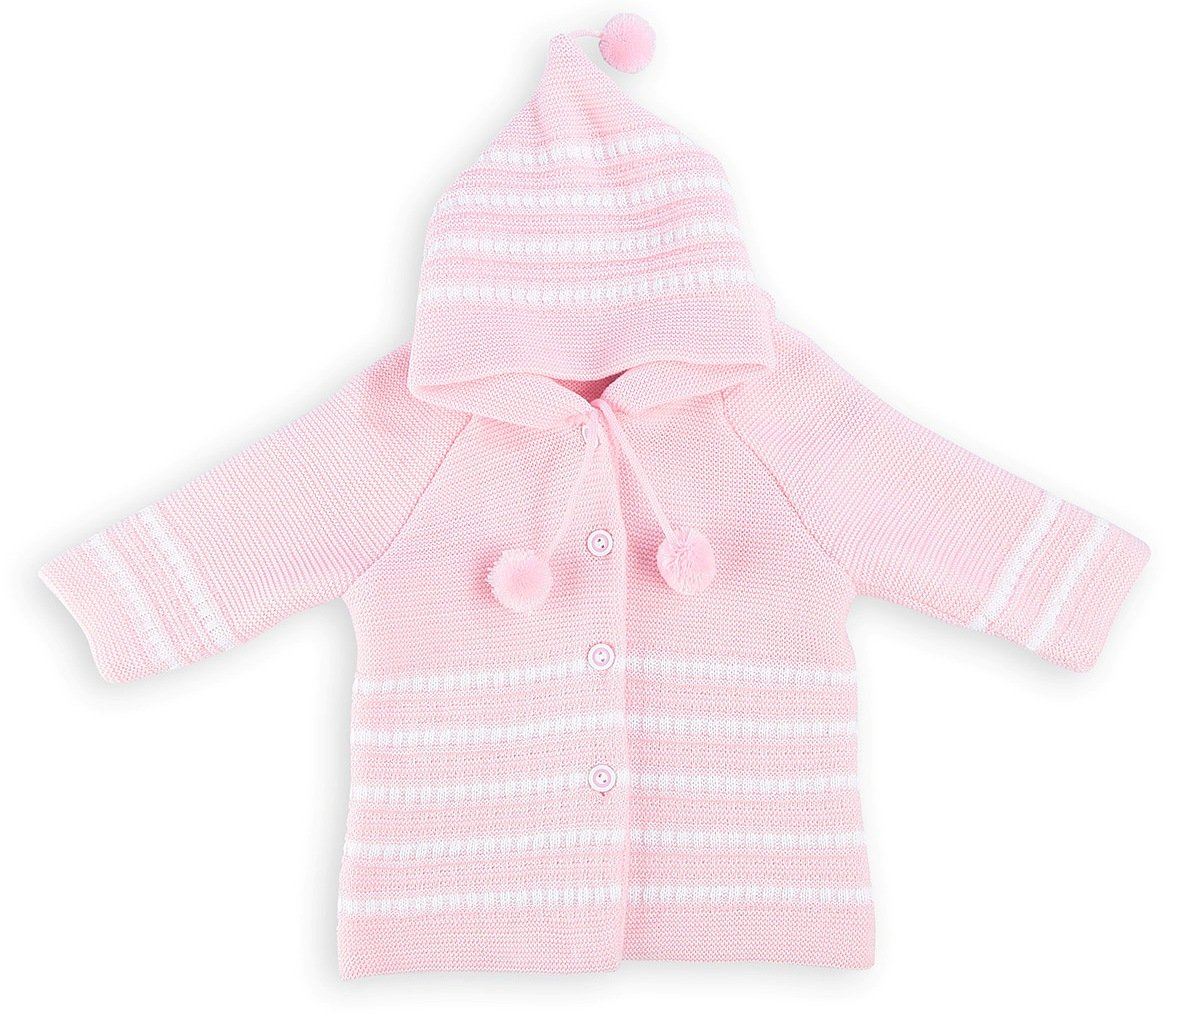 Lilax Baby Girls' Striped Knit Cardigan Sweater with Hood 9-12M Pink